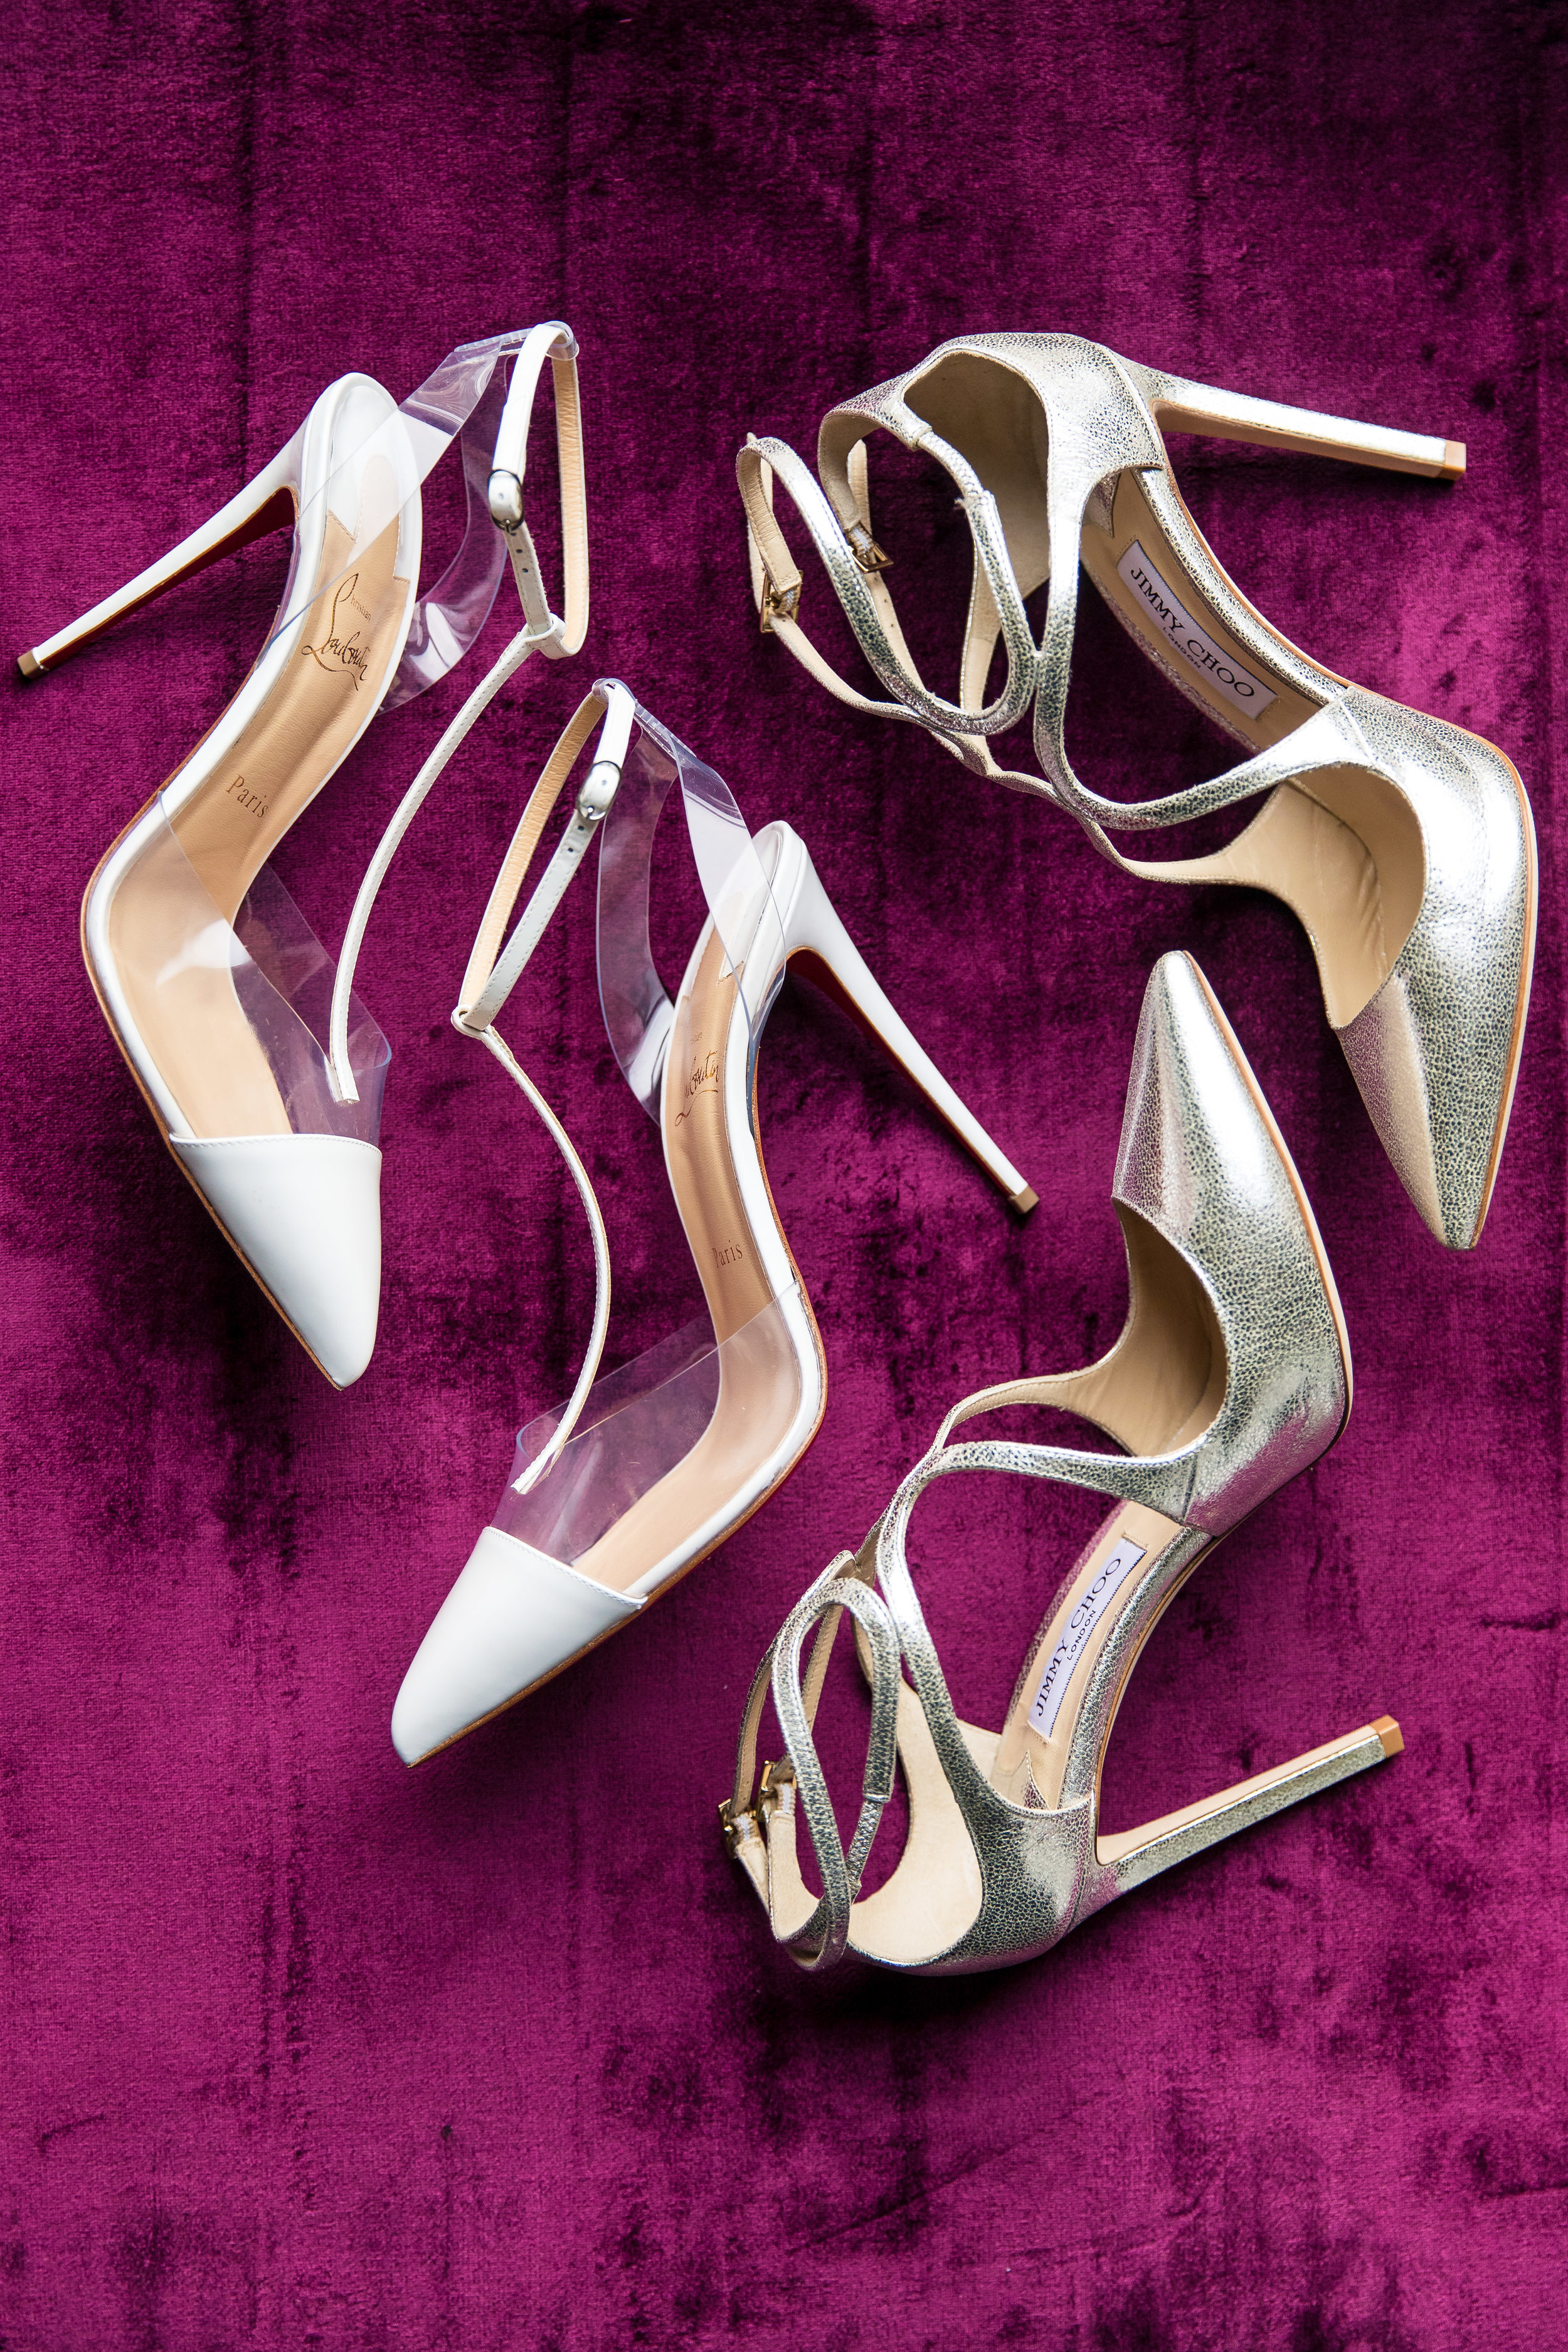 Louboutins and Jimmy Choo.  Designed and Produced by Las Vegas Wedding Planner Andrea Eppolito. Images by Brian Leahy.